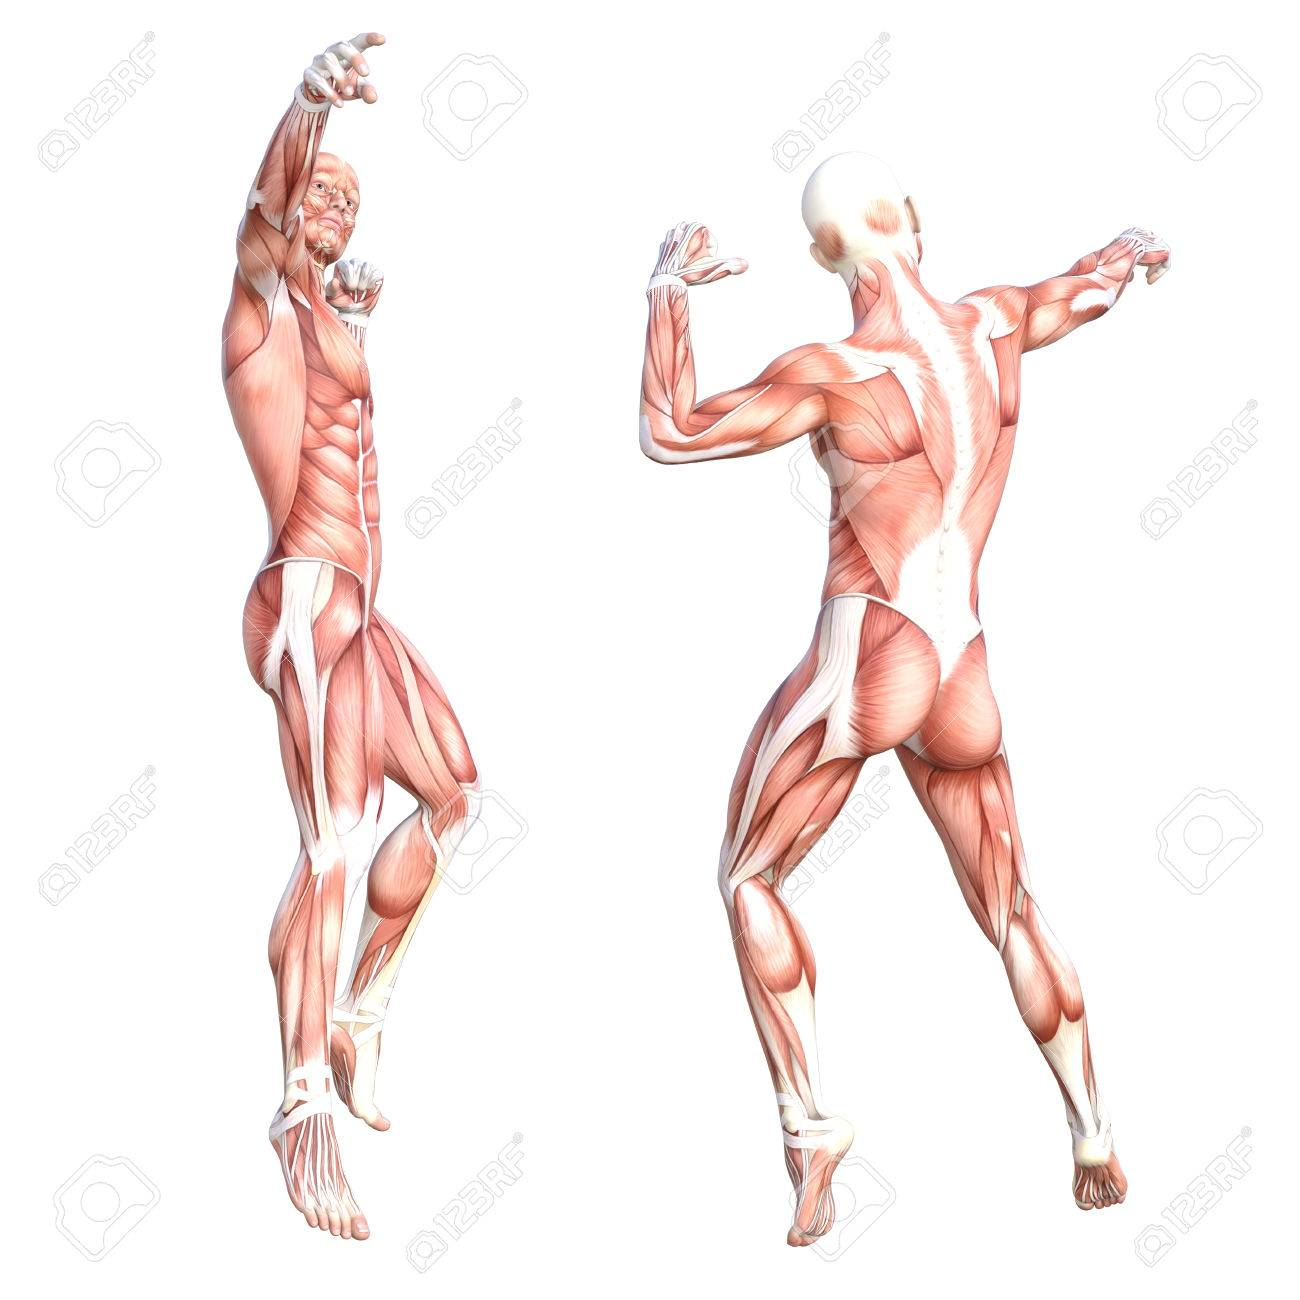 Conceptual Anatomy Healthy Skinless Human Body Muscle System Stock